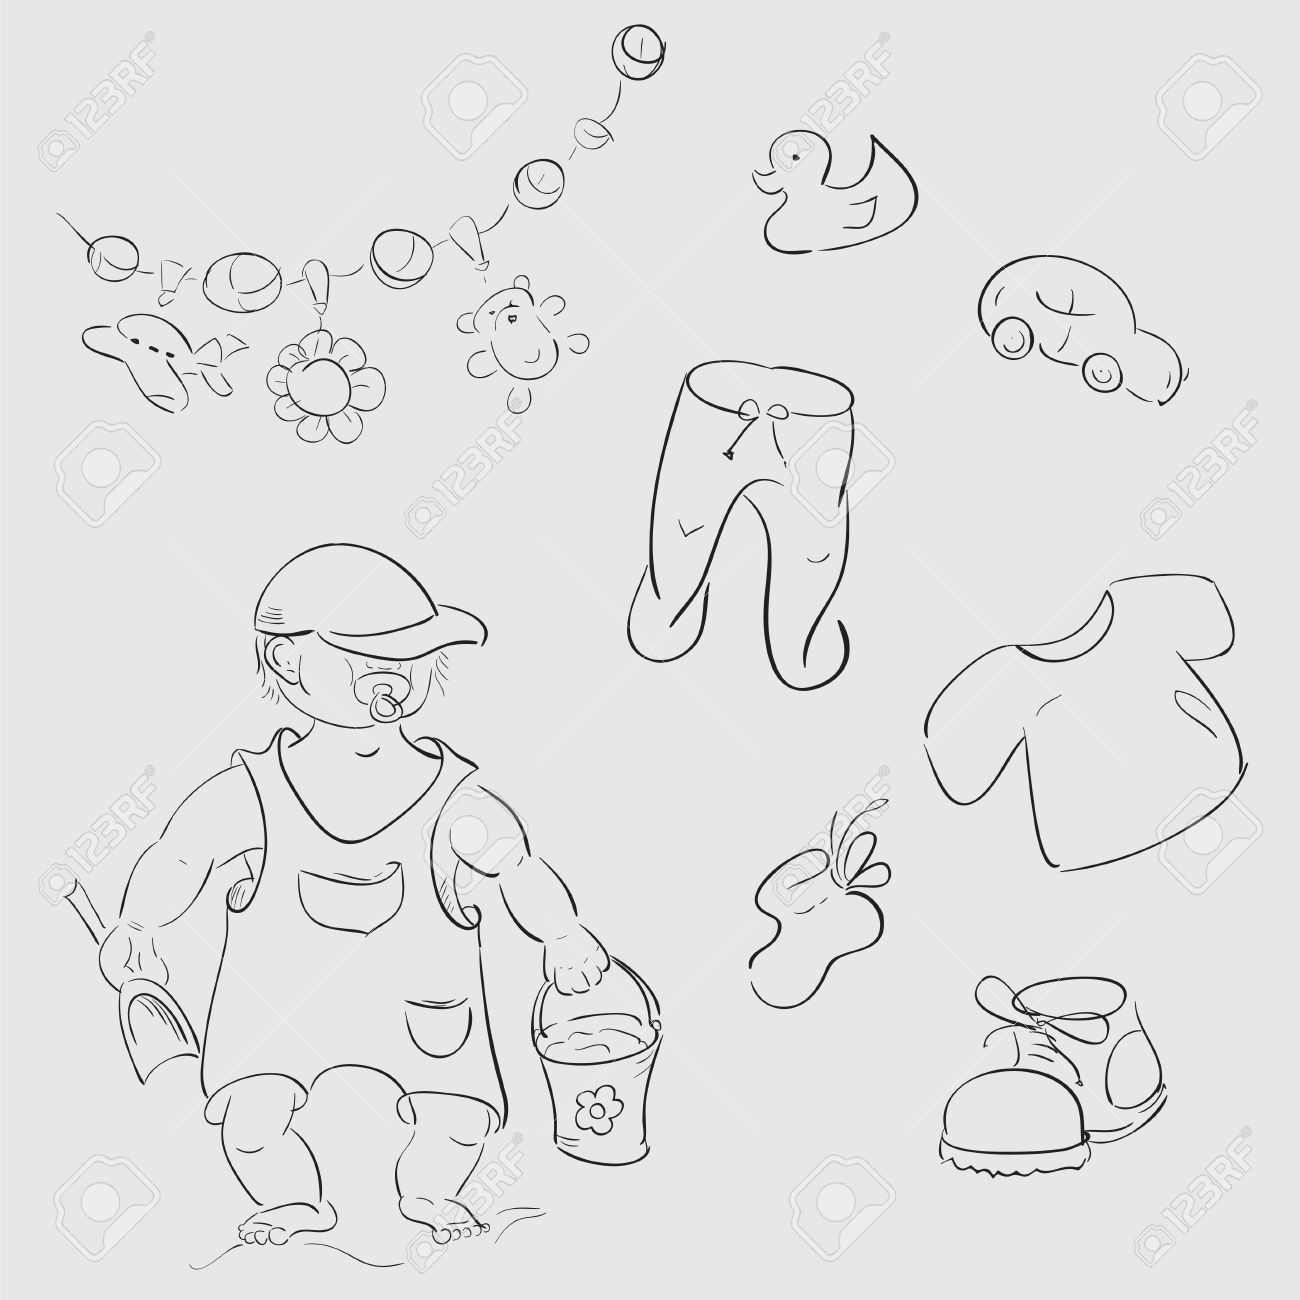 baby boy children s toys and clothes sketches stock vector 21263480